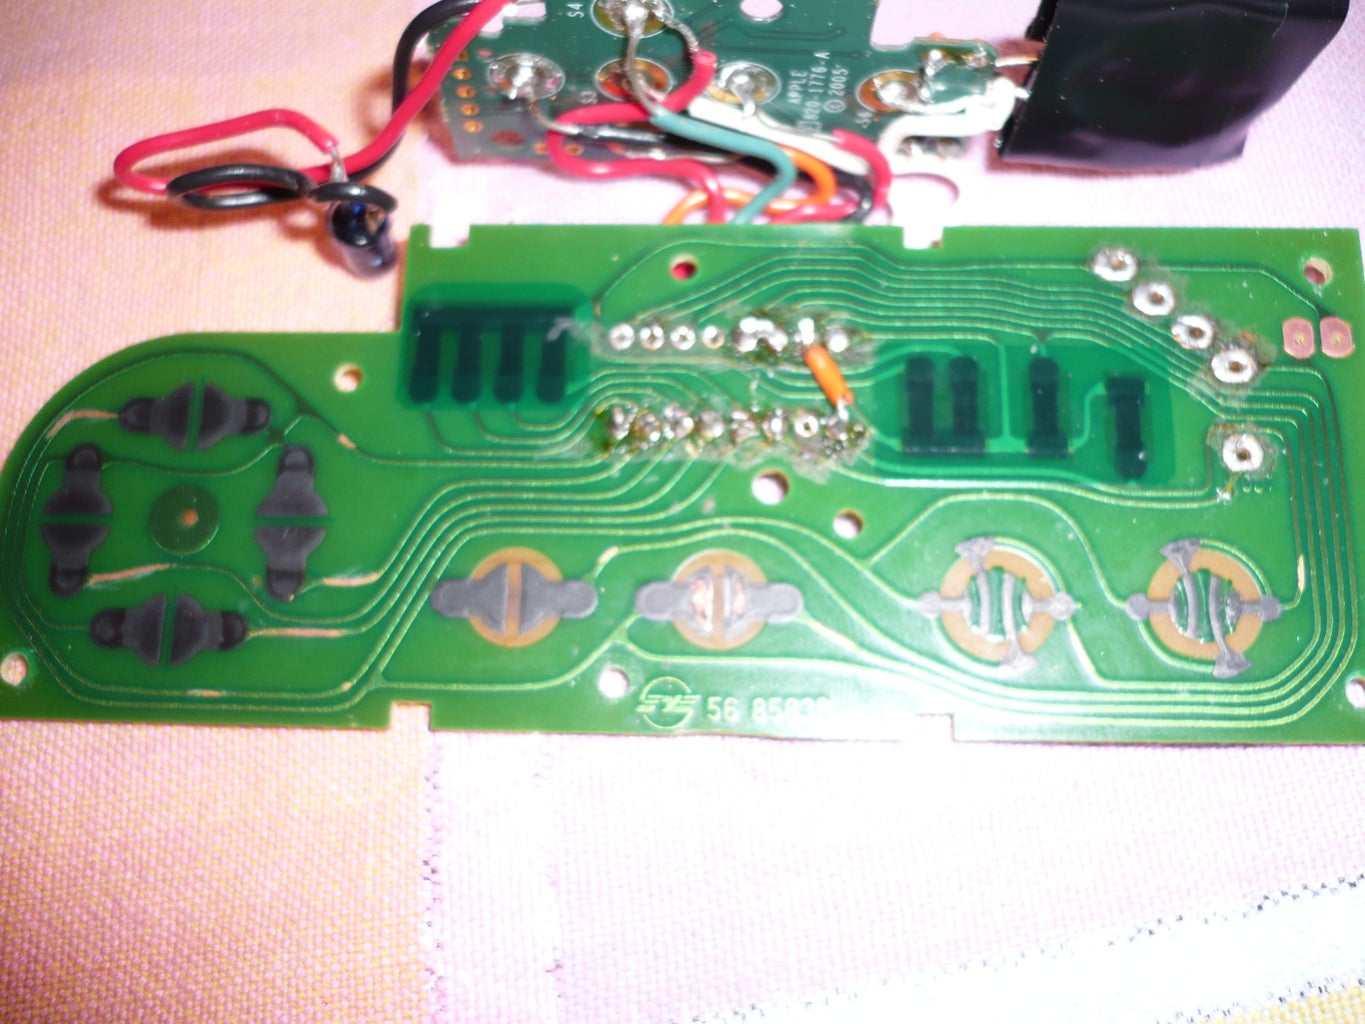 Soldering Wires on the NES Controller